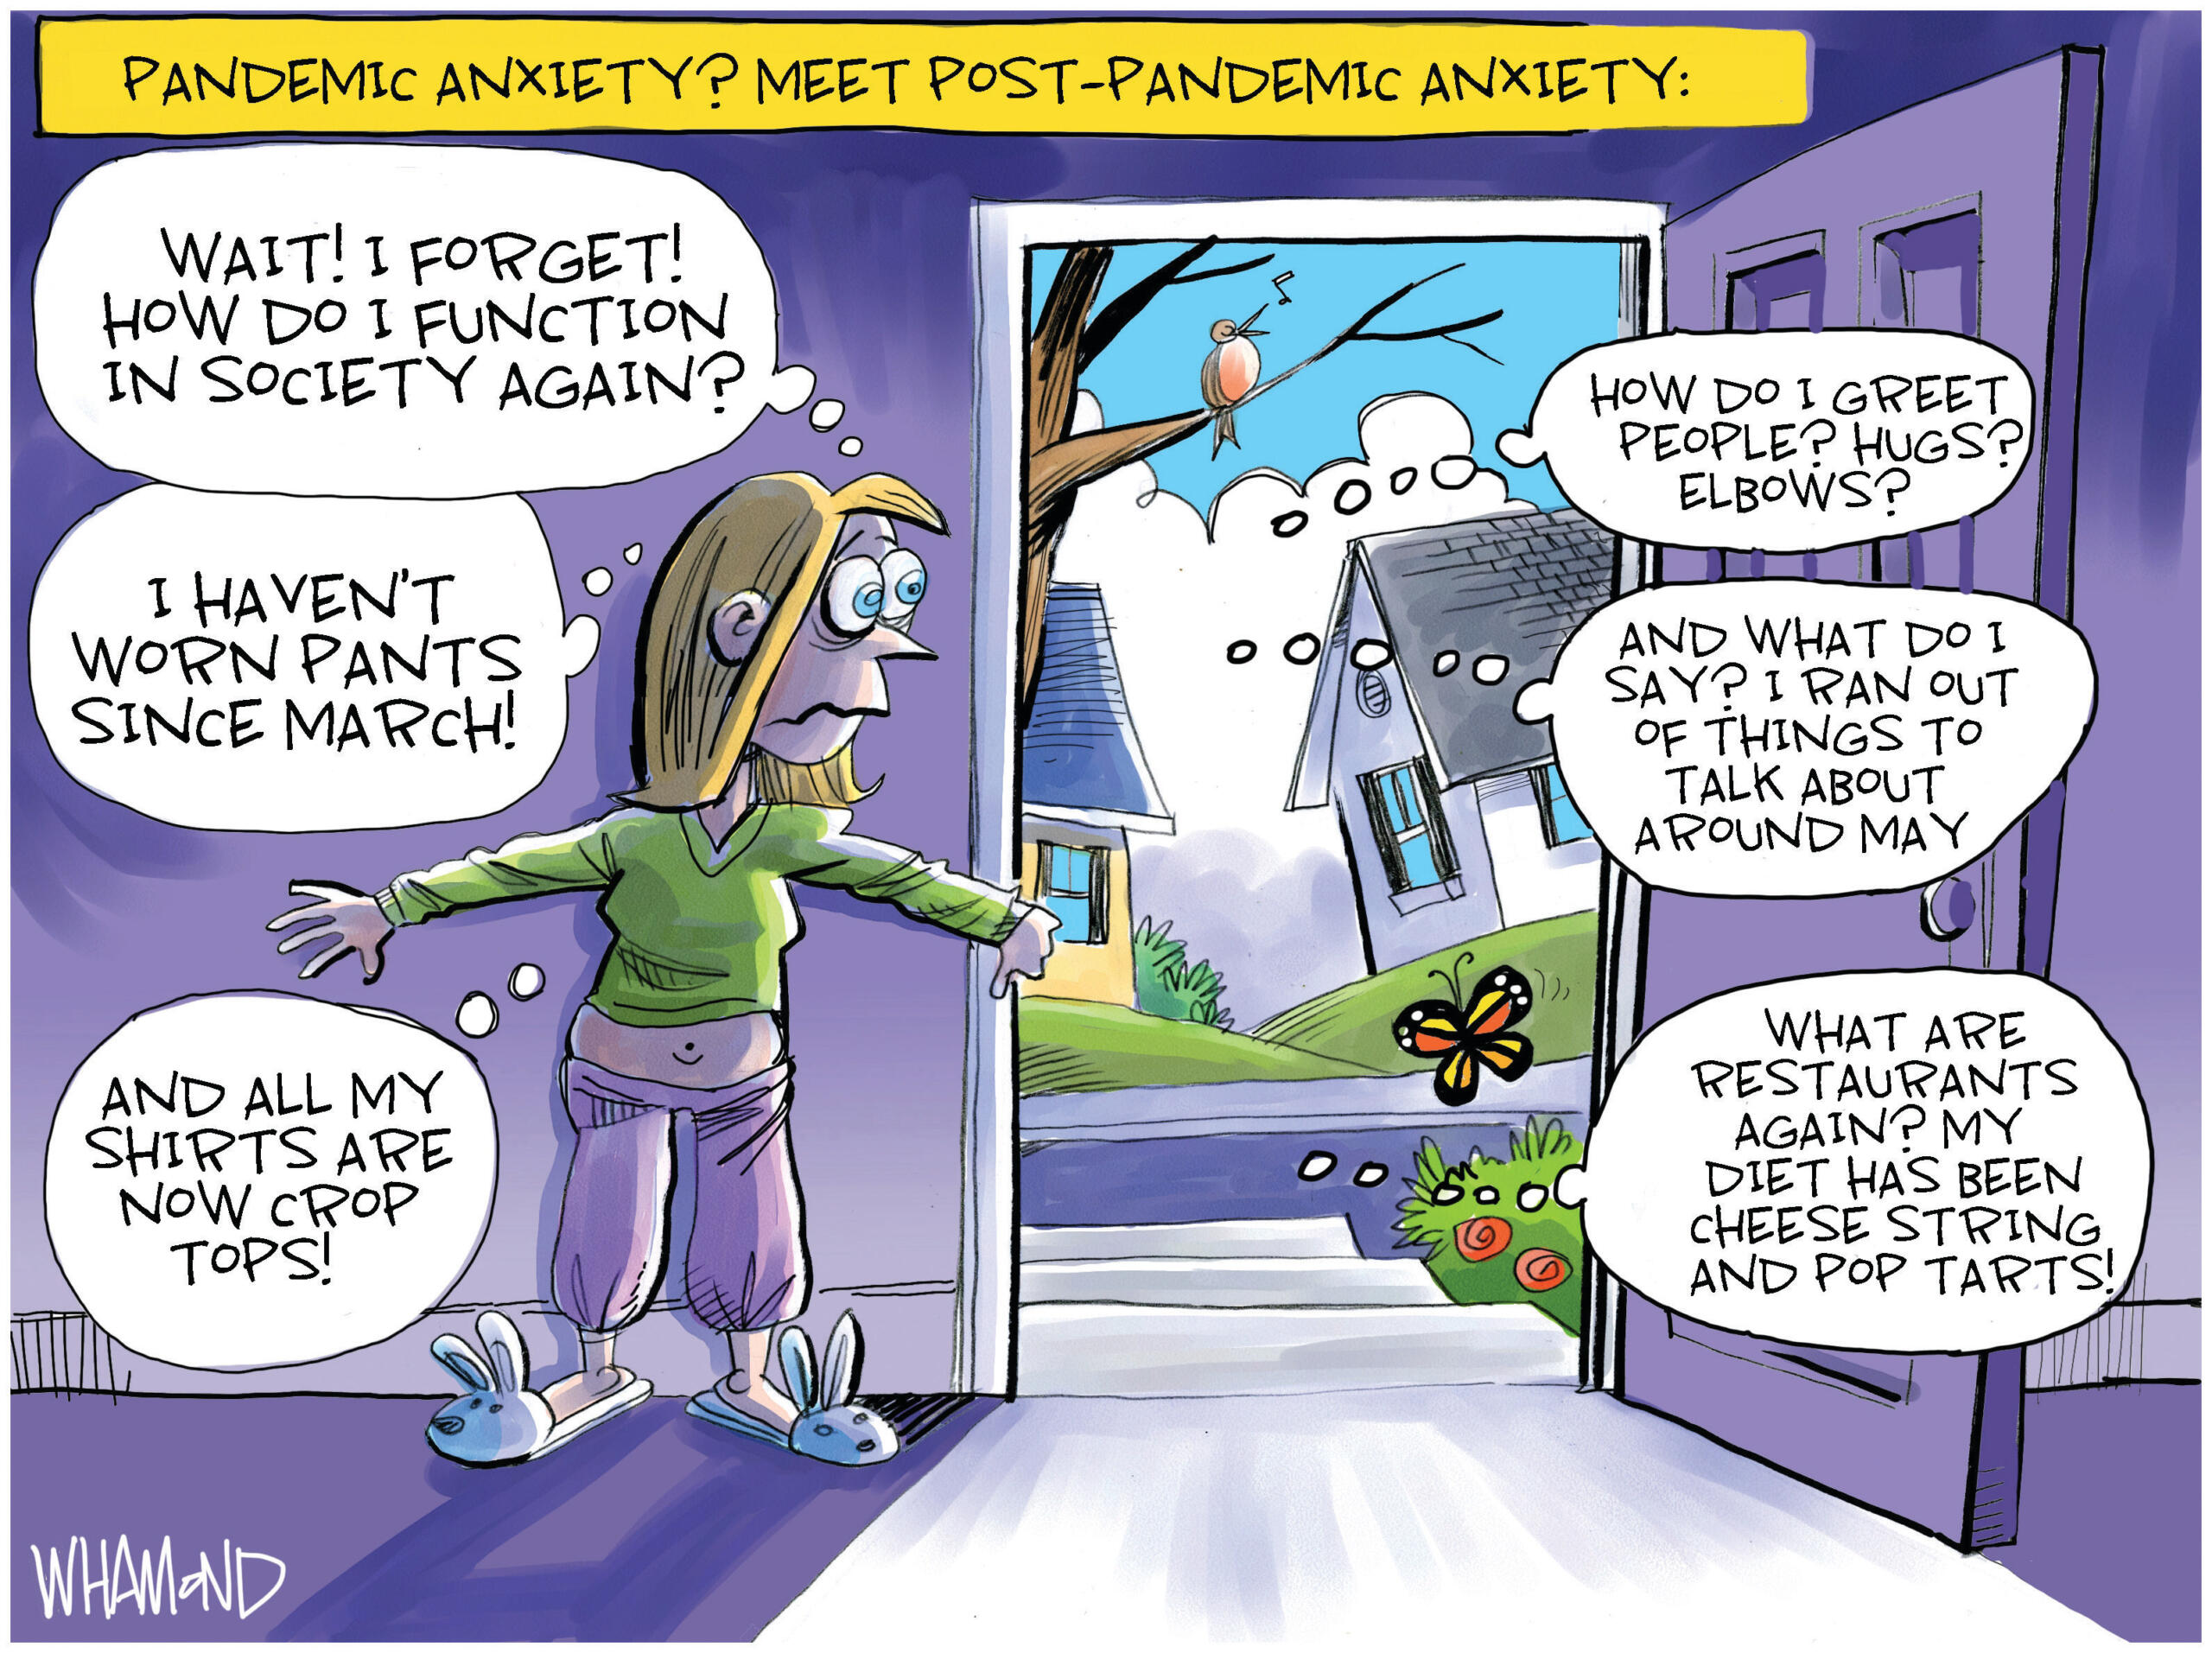 March 20: Post-Pandemic Stress